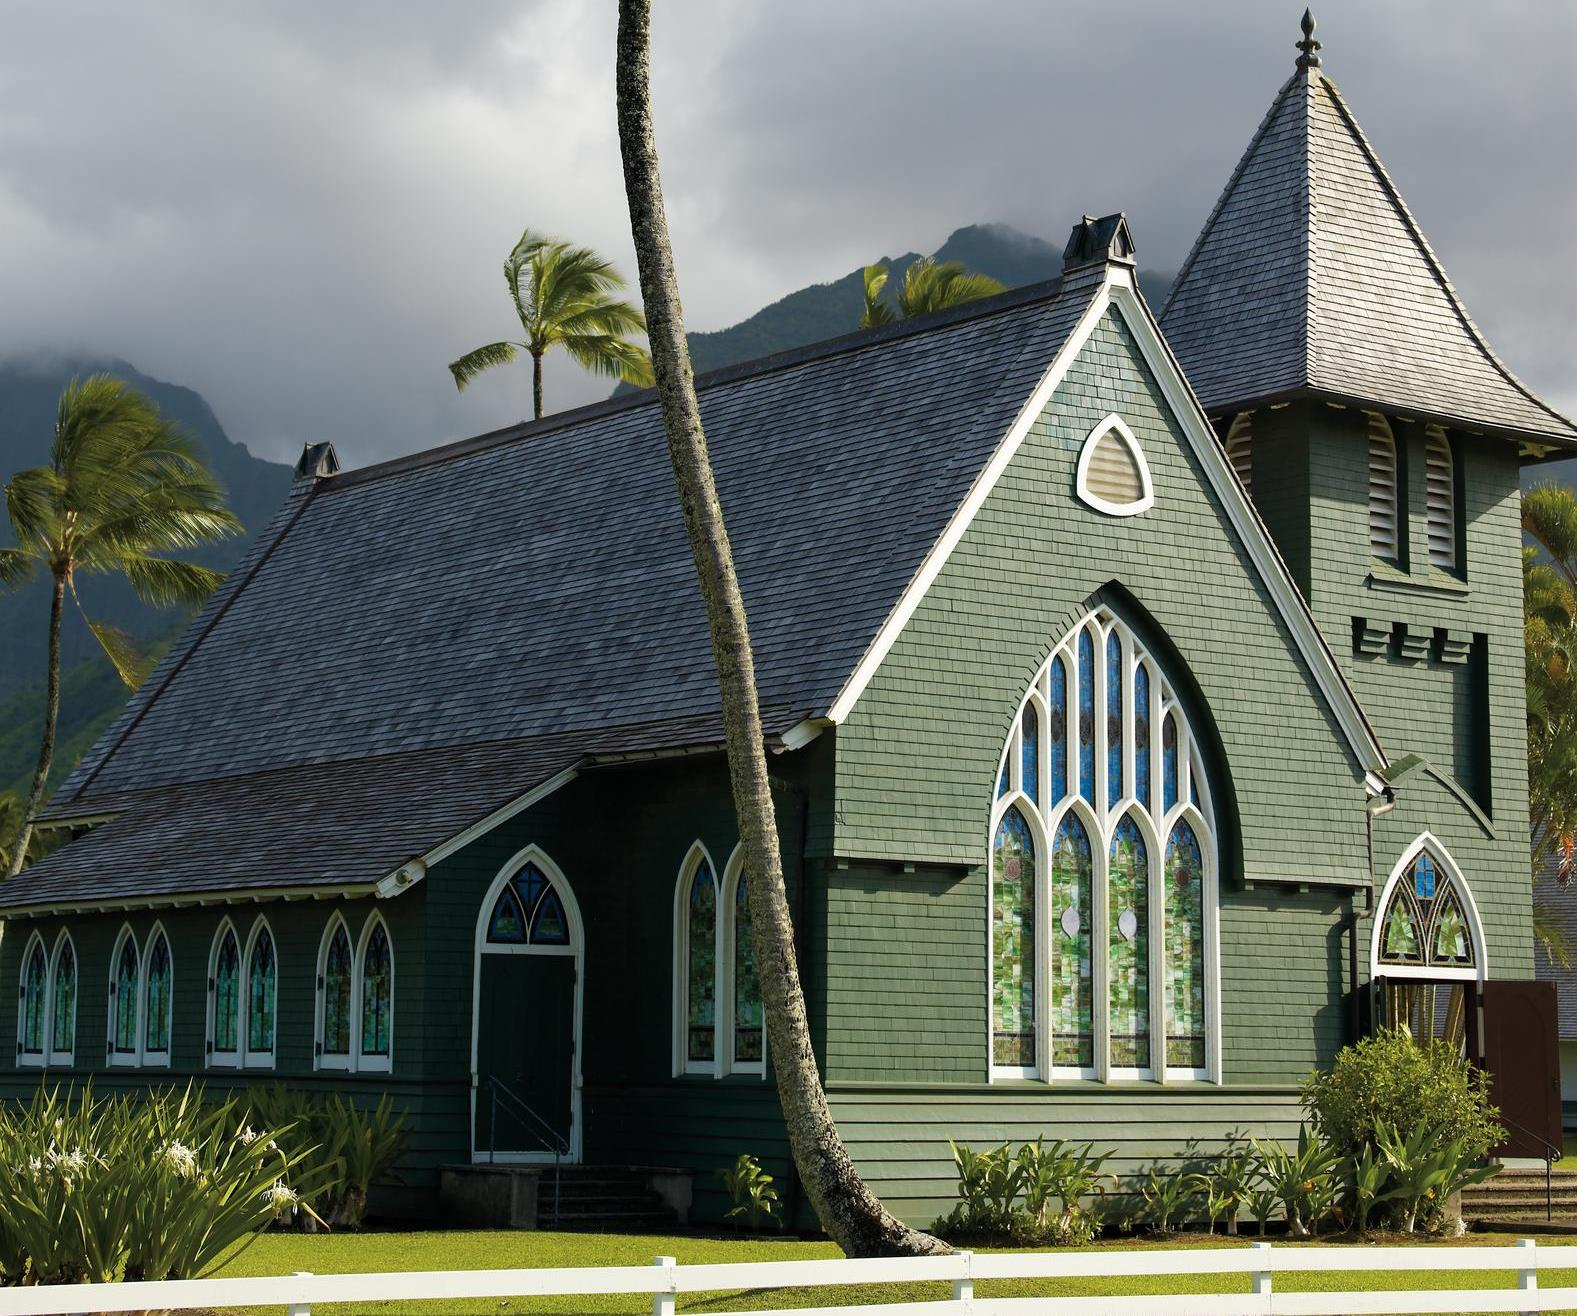 Things to do on Kauai - Lookout at Hanalei Valley